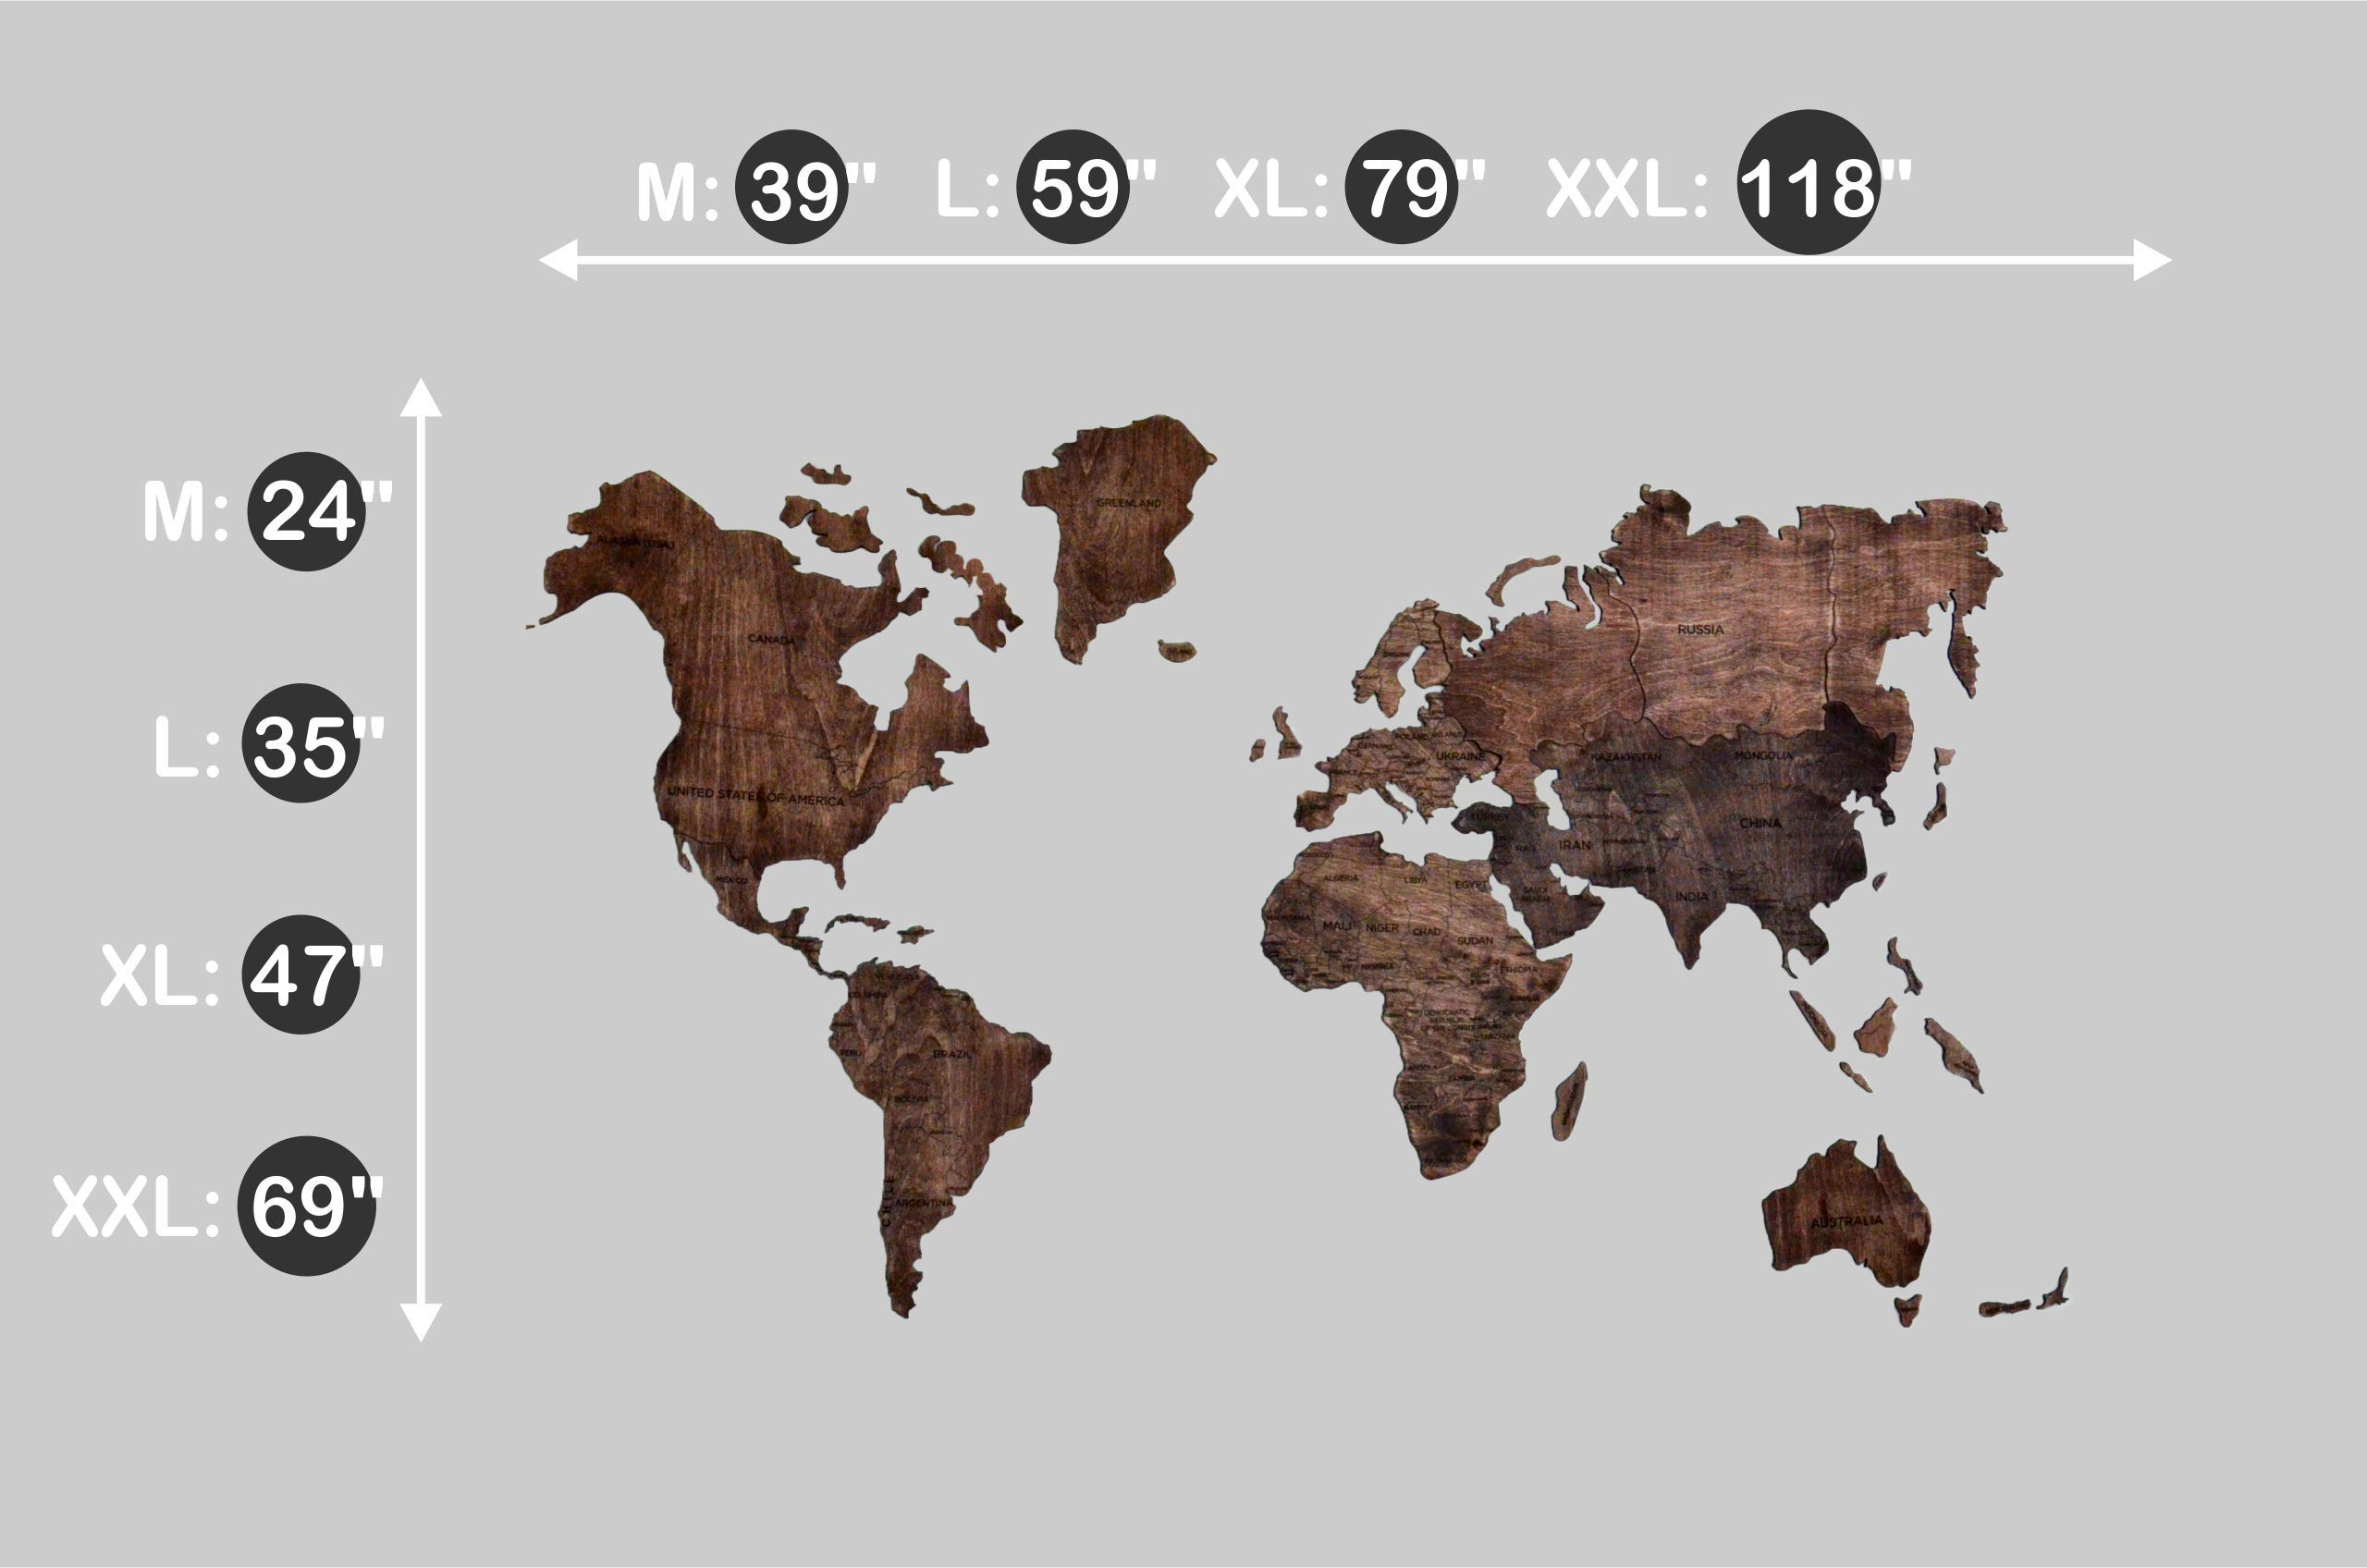 Large World Map of the World Travel map Wall world Cork Rustic Home decor Office decor Wall decor Dorm Living room Interior design Fathers Day Gift - By Enjoy The Wood 100x50cm, 150x90cm, 200x102cm by Enjoy The Wood (Image #8)